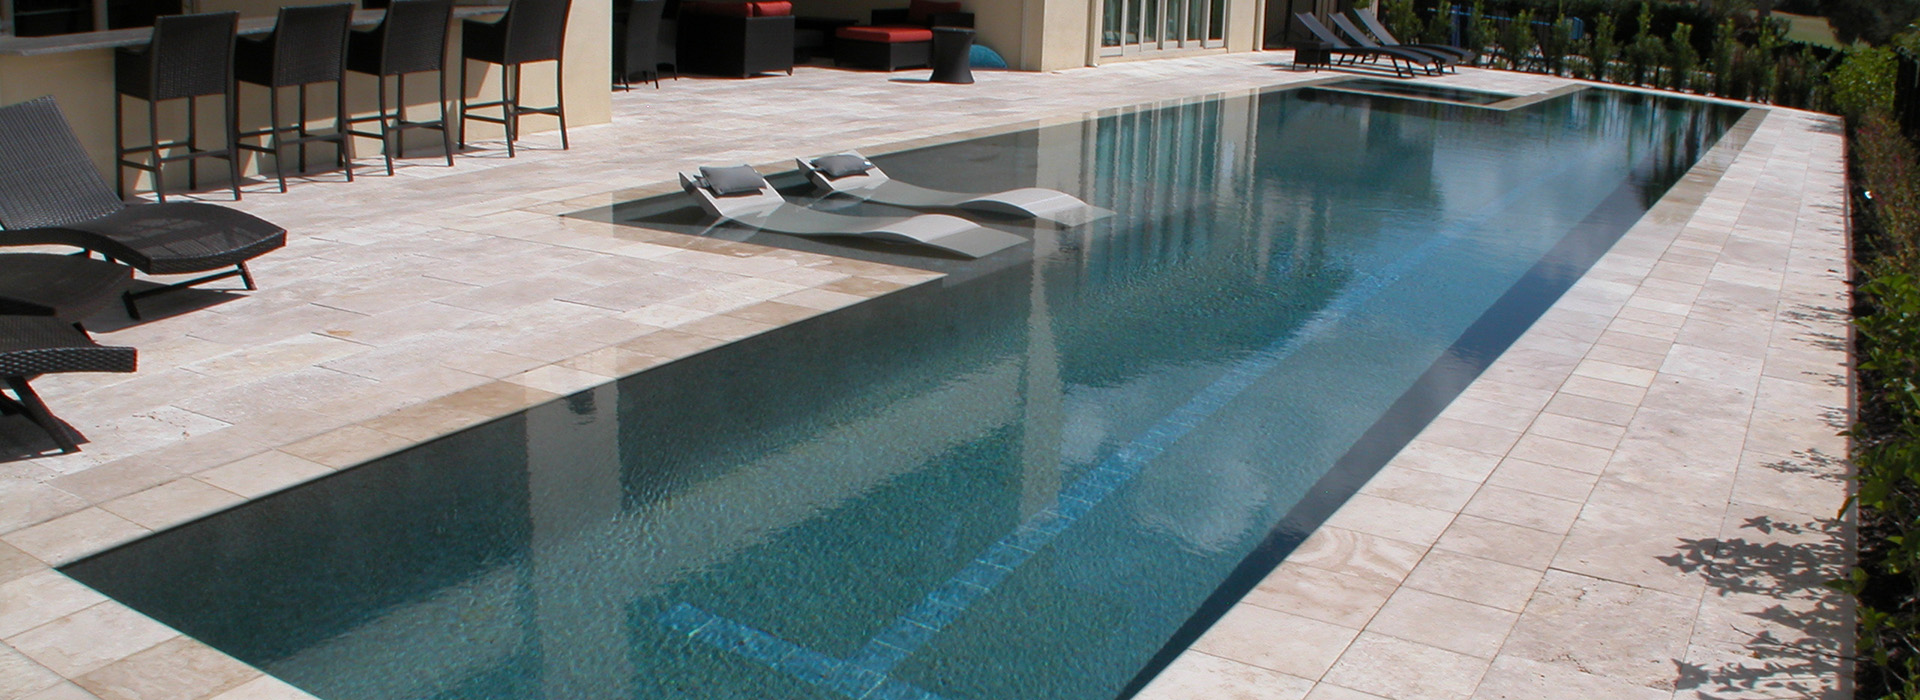 Elegant Pool Area